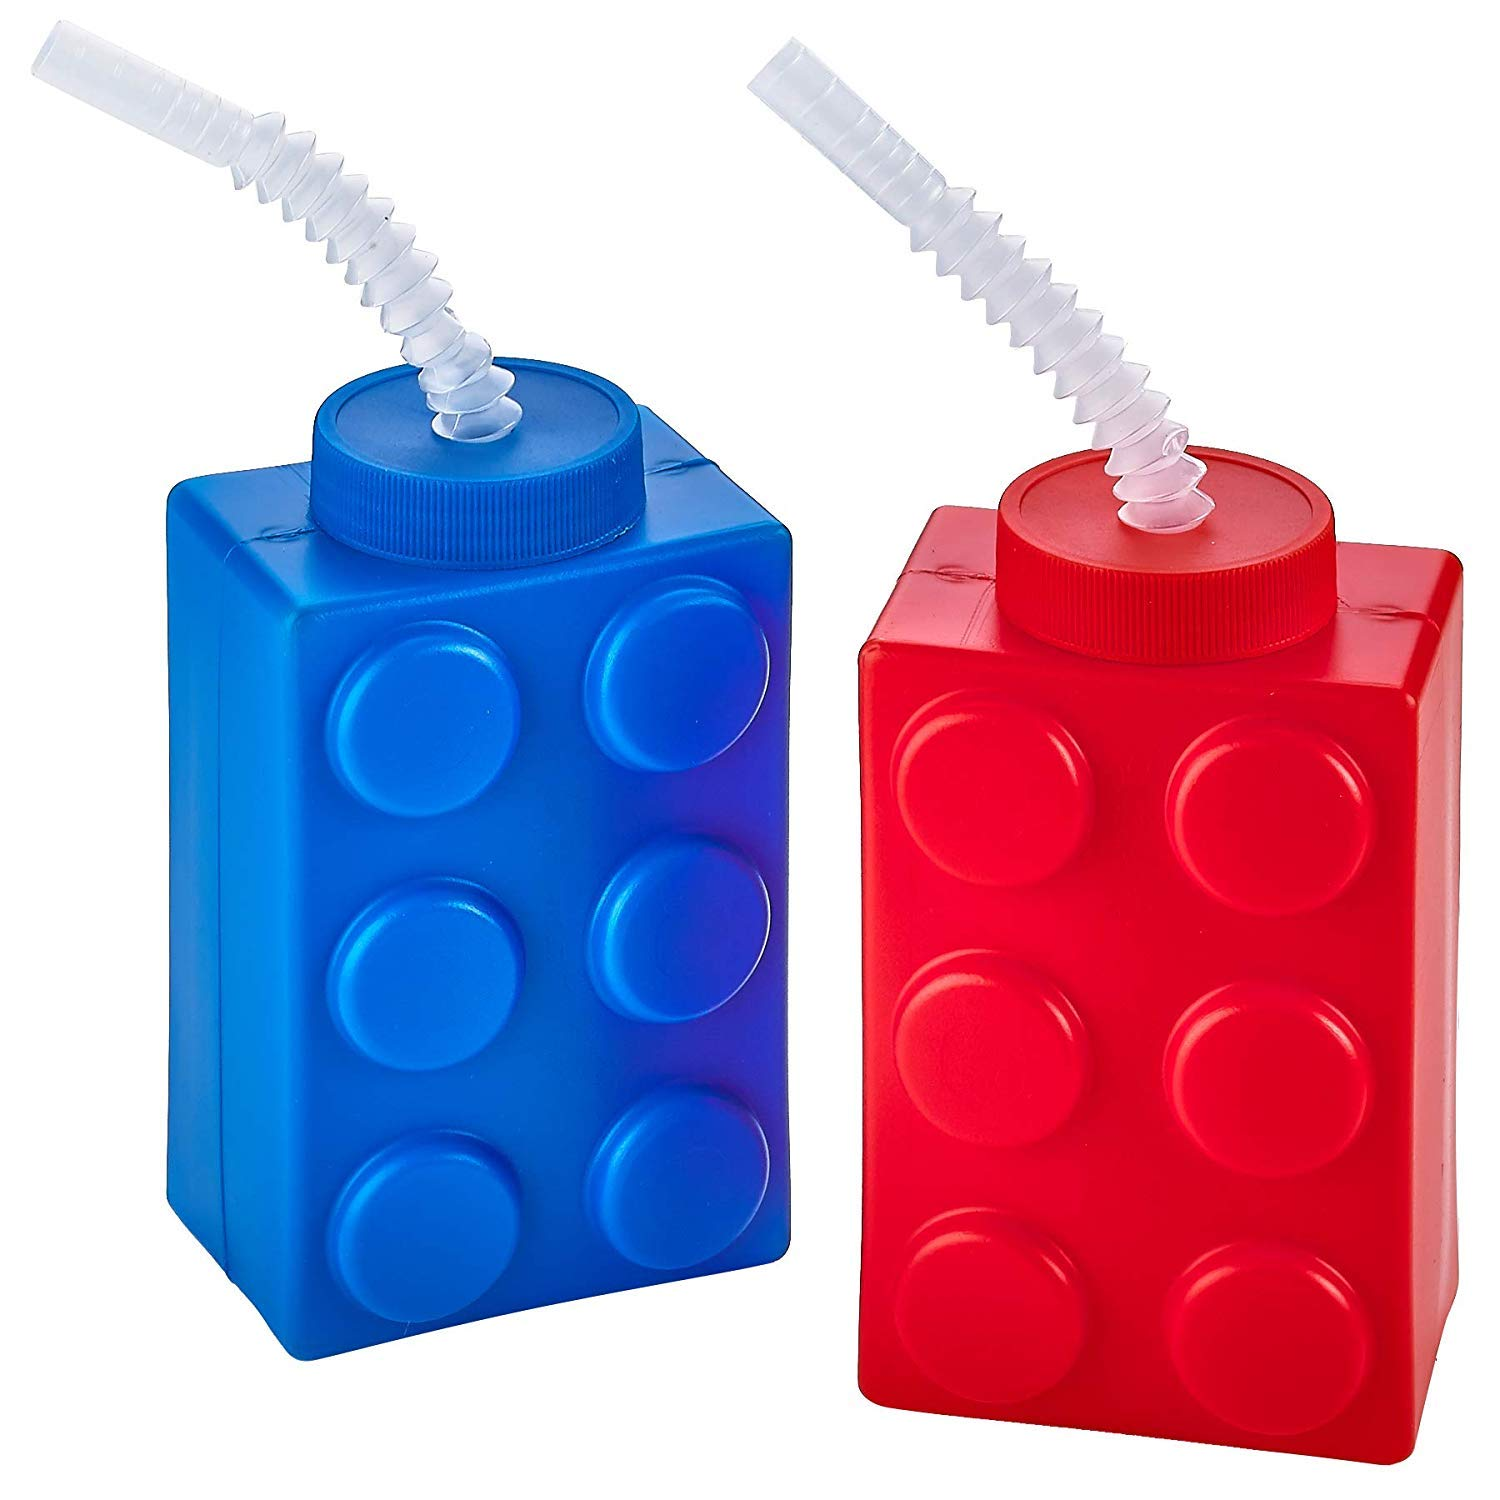 Set of 4 Reusable Lego Resembling Brick Party Kids Cup for Block Birthday Party Supplies and Favors Building Block Cups with Flexible Straws /& Lids